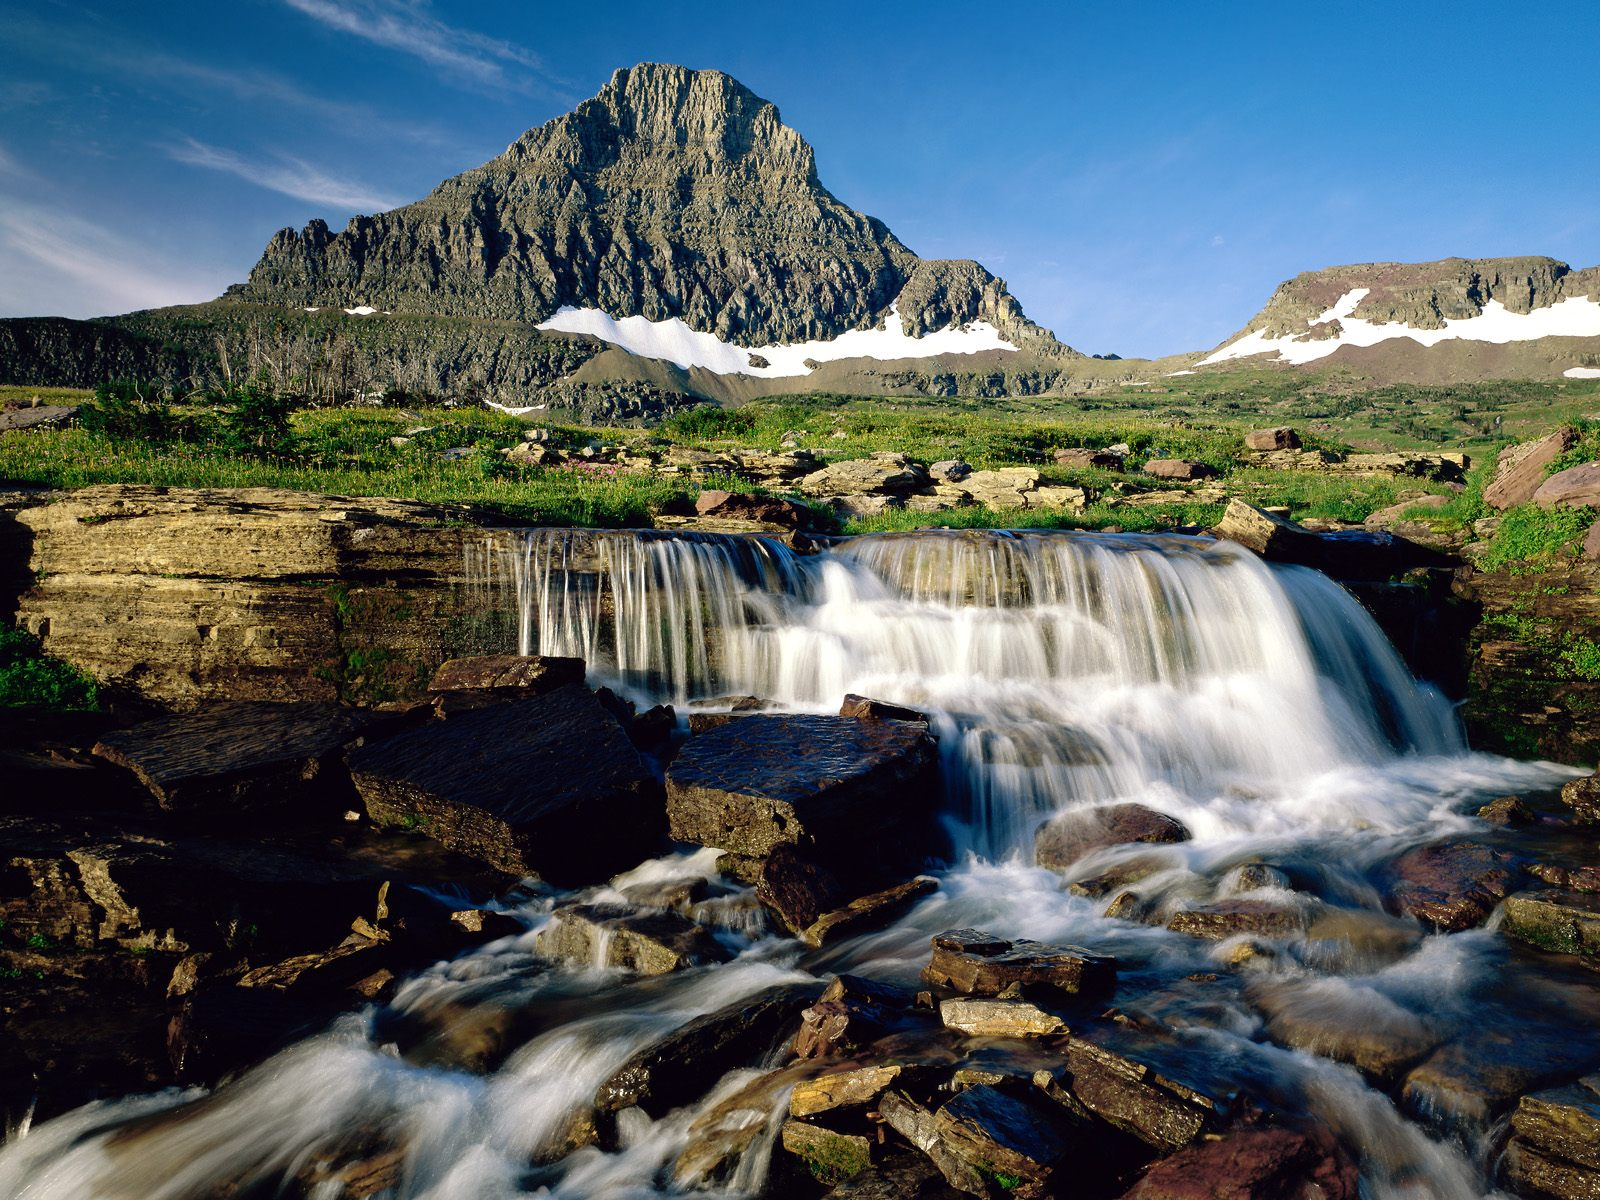 Wallpapers   Download Glacier National Park Montana Wallpapers 1600x1200